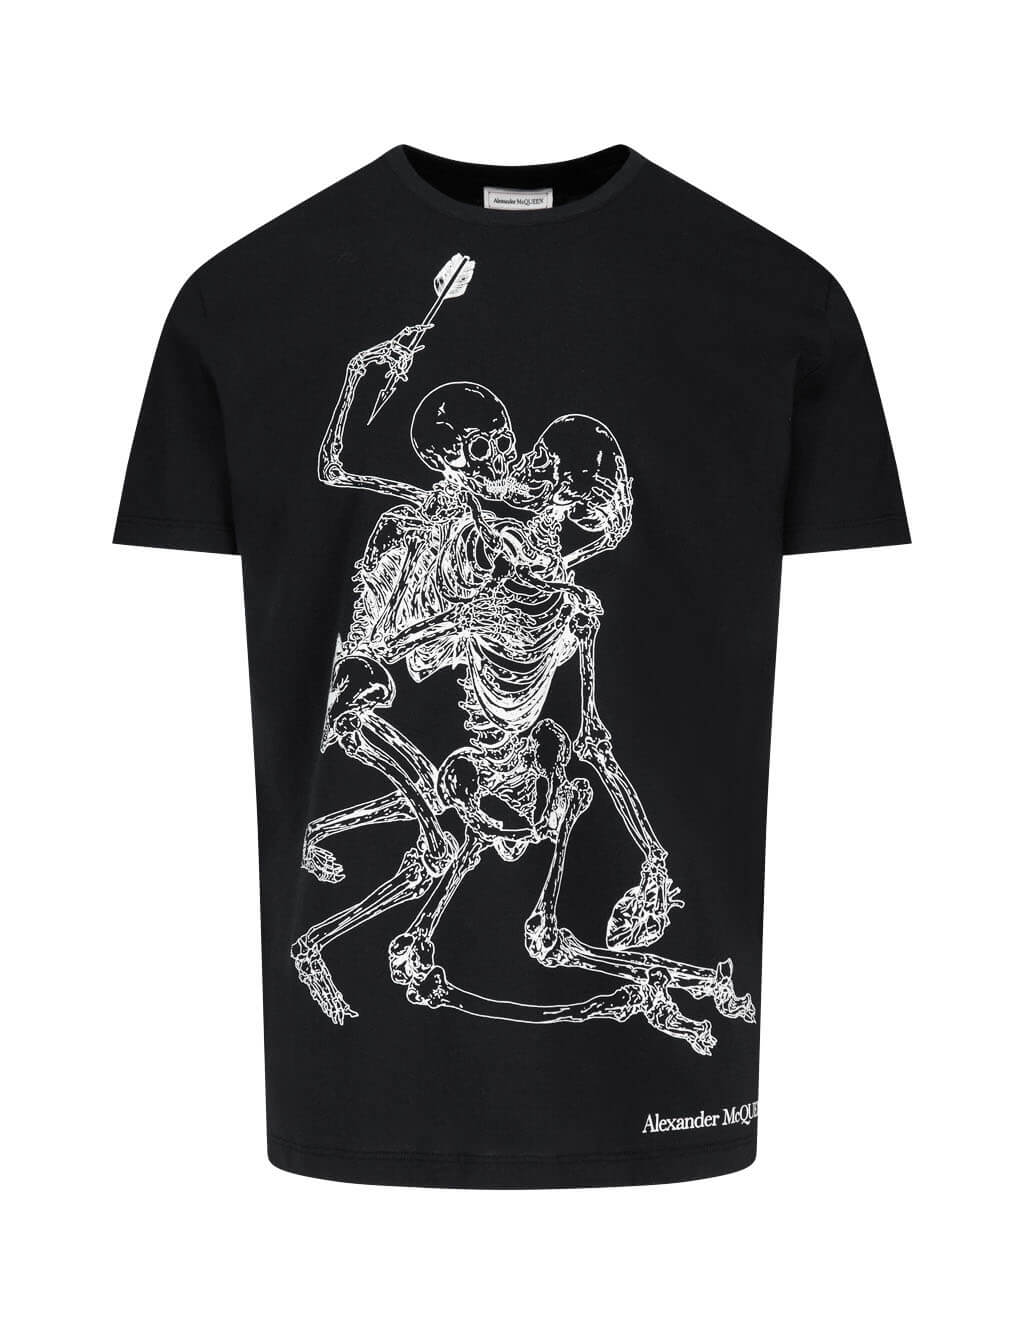 Men's Black Alexander McQueen Lover Skeletons Print T-Shirt 624170QPZ600901